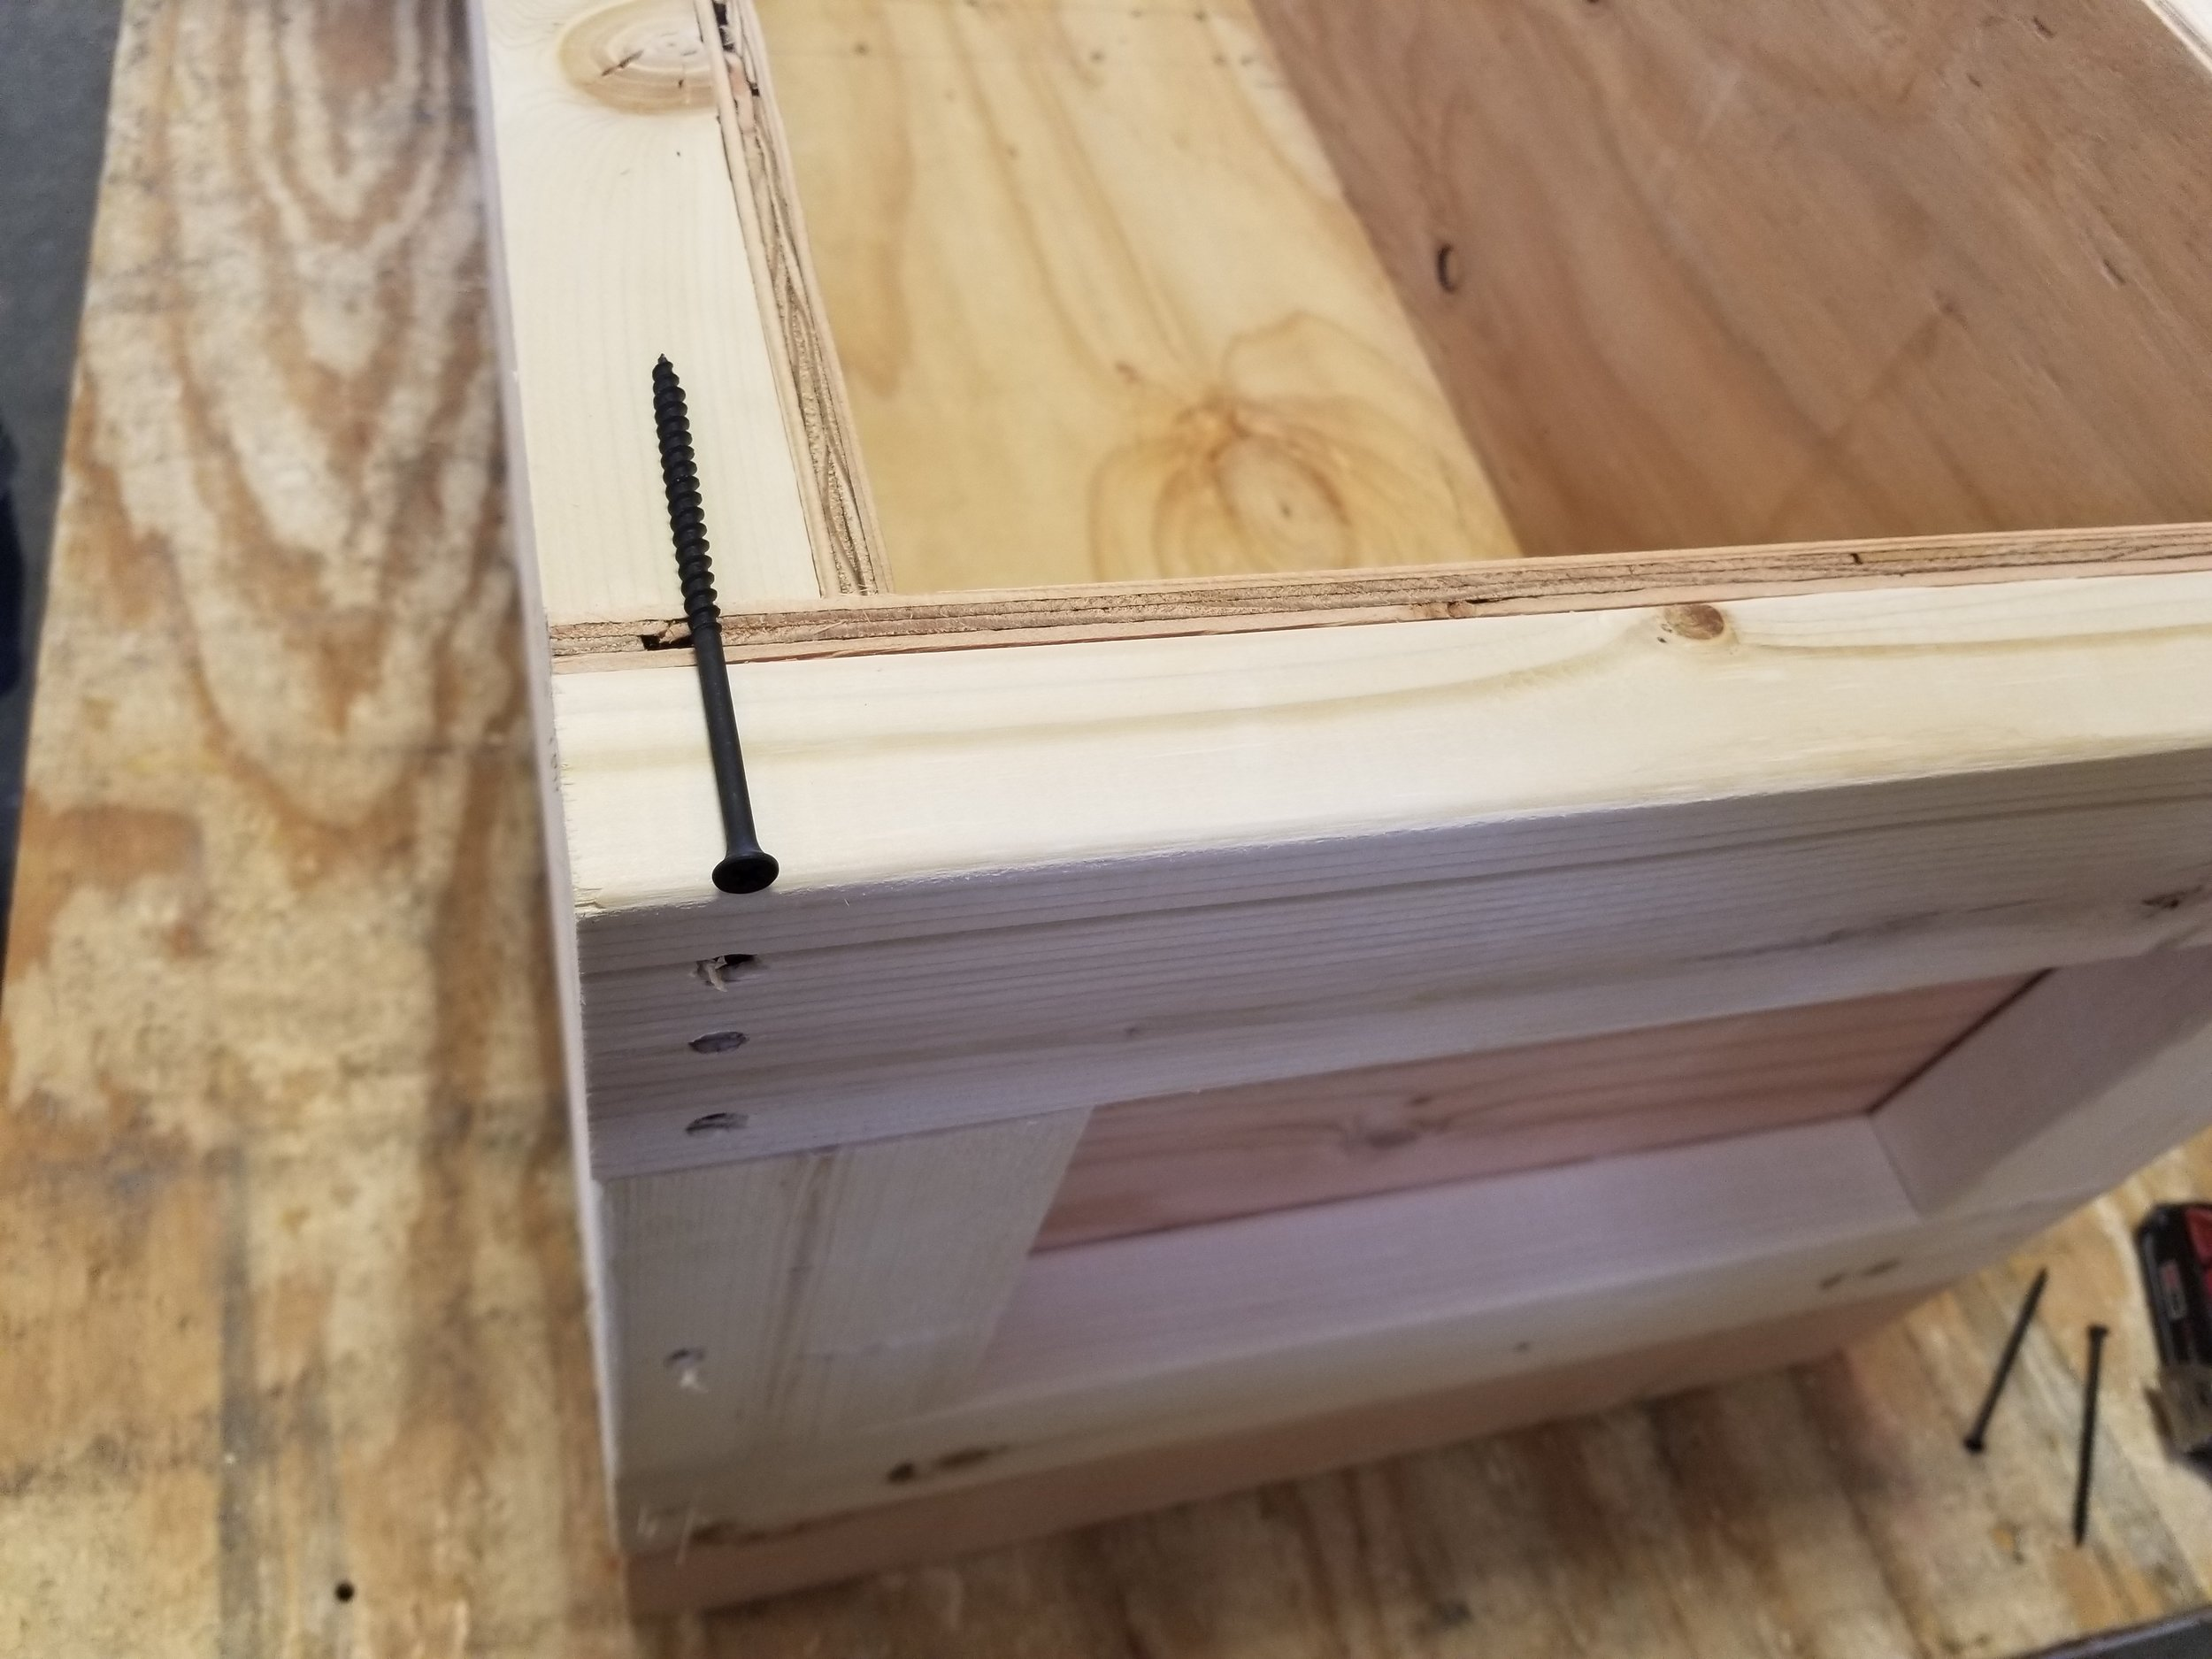 SCREW ASSEMBLY:Why do we use 4-Inch screws almost exclusively? - Because it's faster?…NOBecause it's cheaper?…NOBecause it's stronger?…IT SURE IS!Screw assembling our crates is just a small part of what we do to make a better, stronger wooden shipping crate that always works.